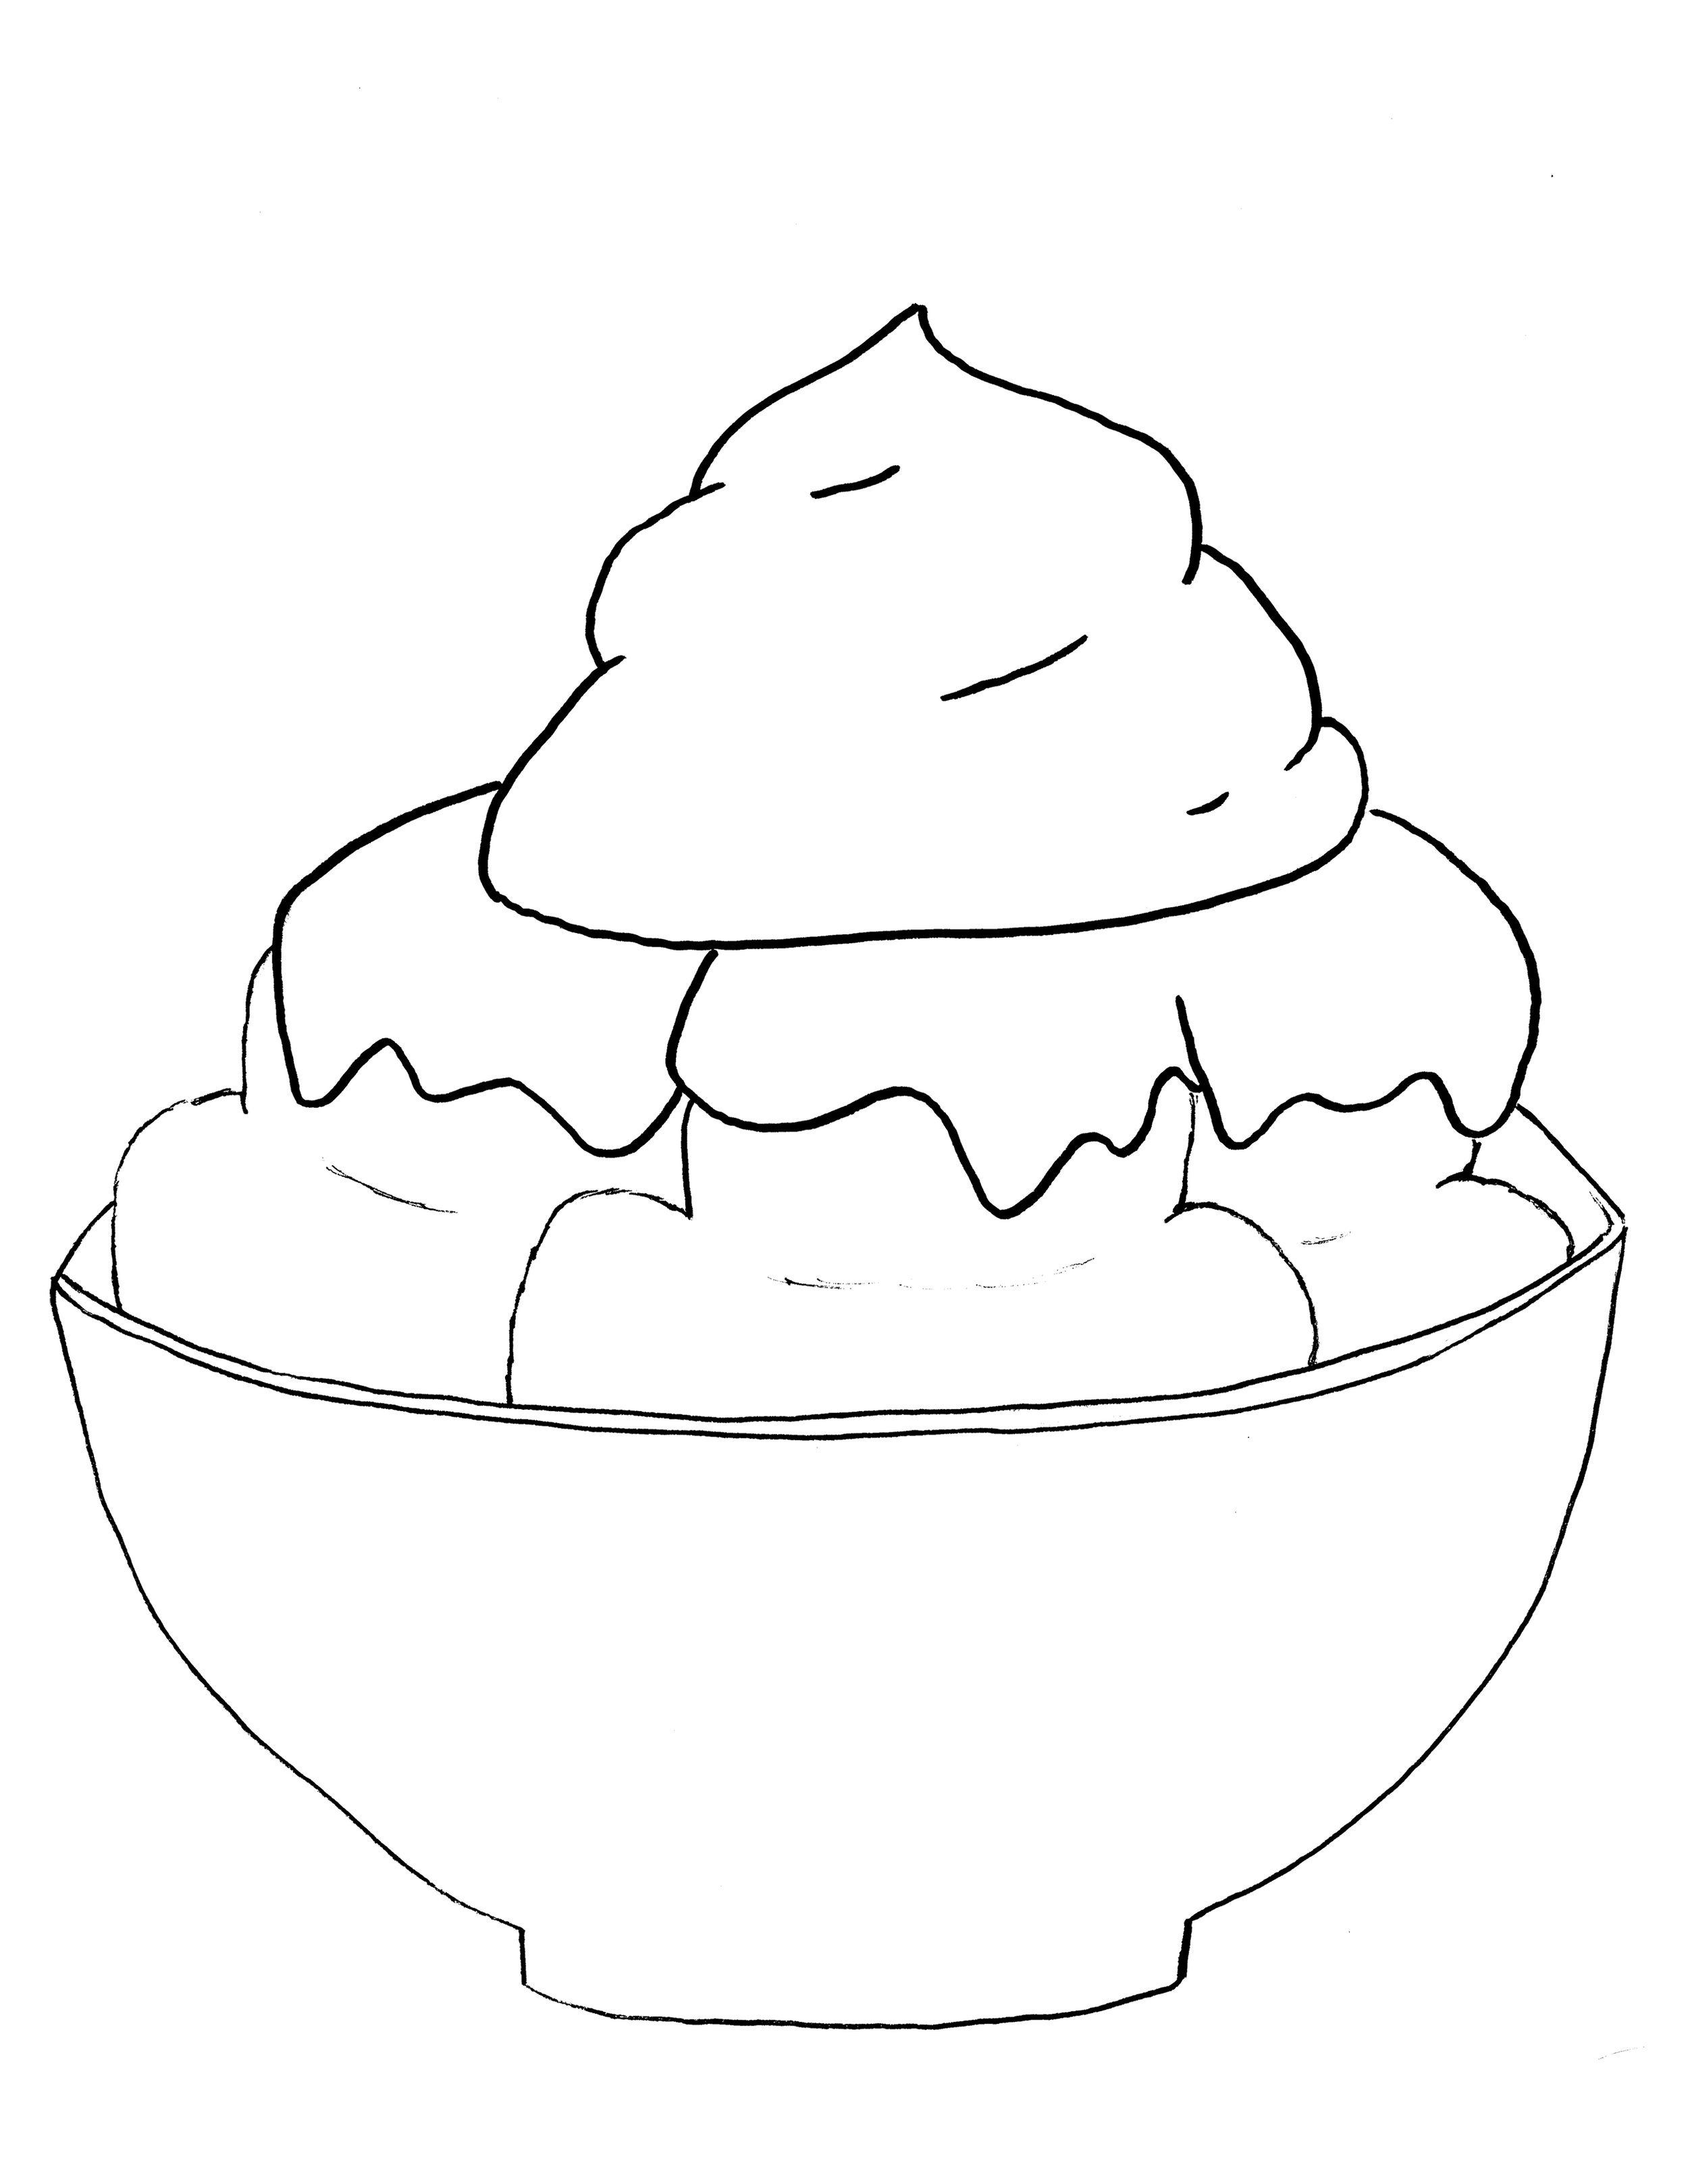 CB-Ice Cream Bowl.jpg